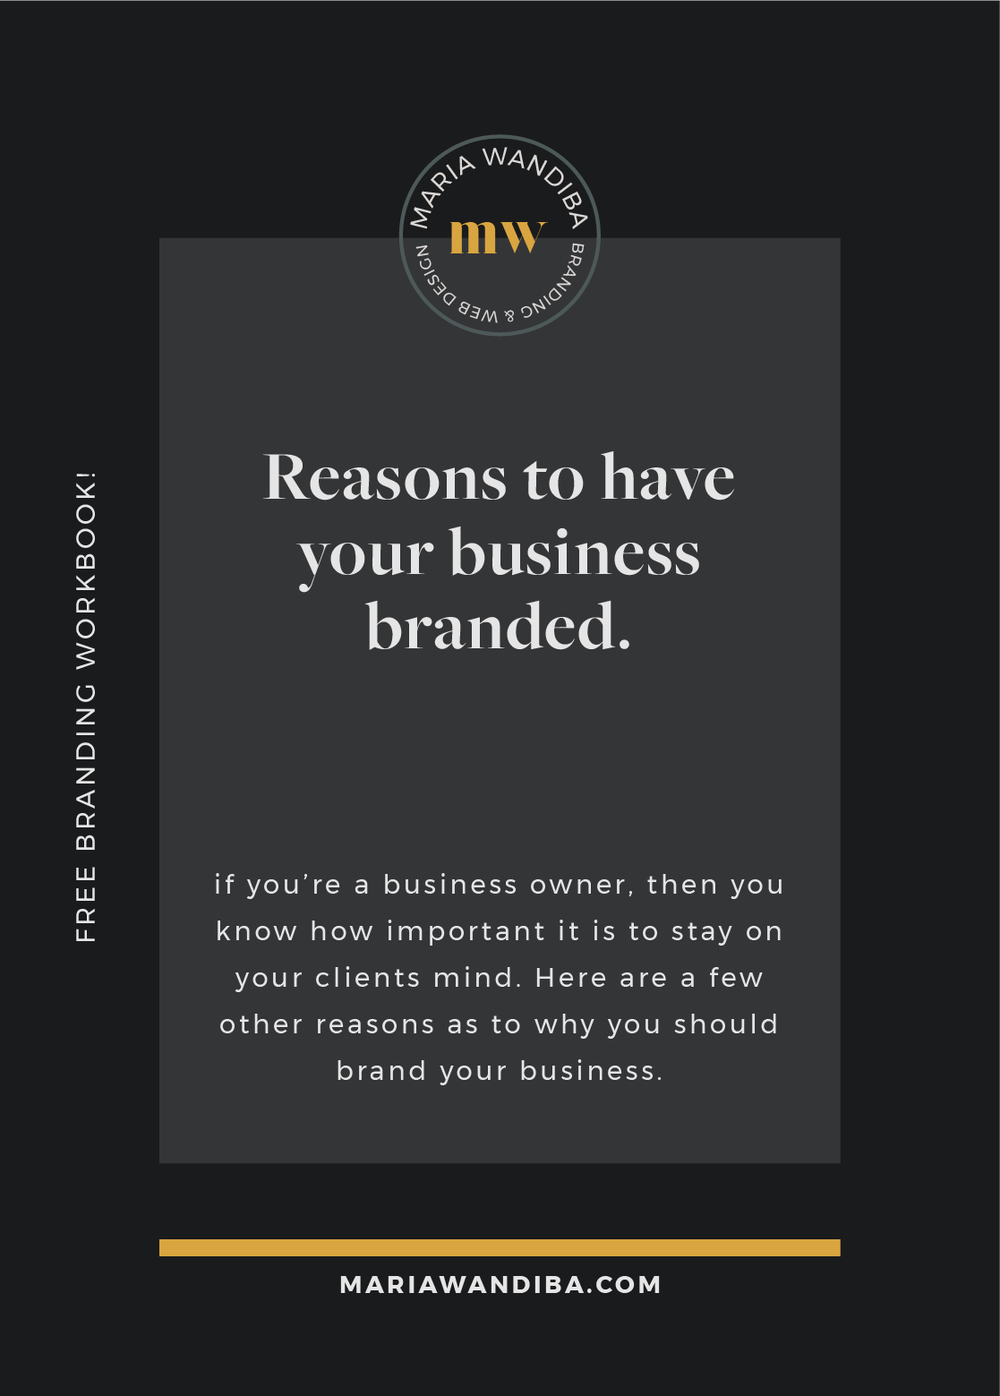 why-your-business-needs-to-be-branded.png